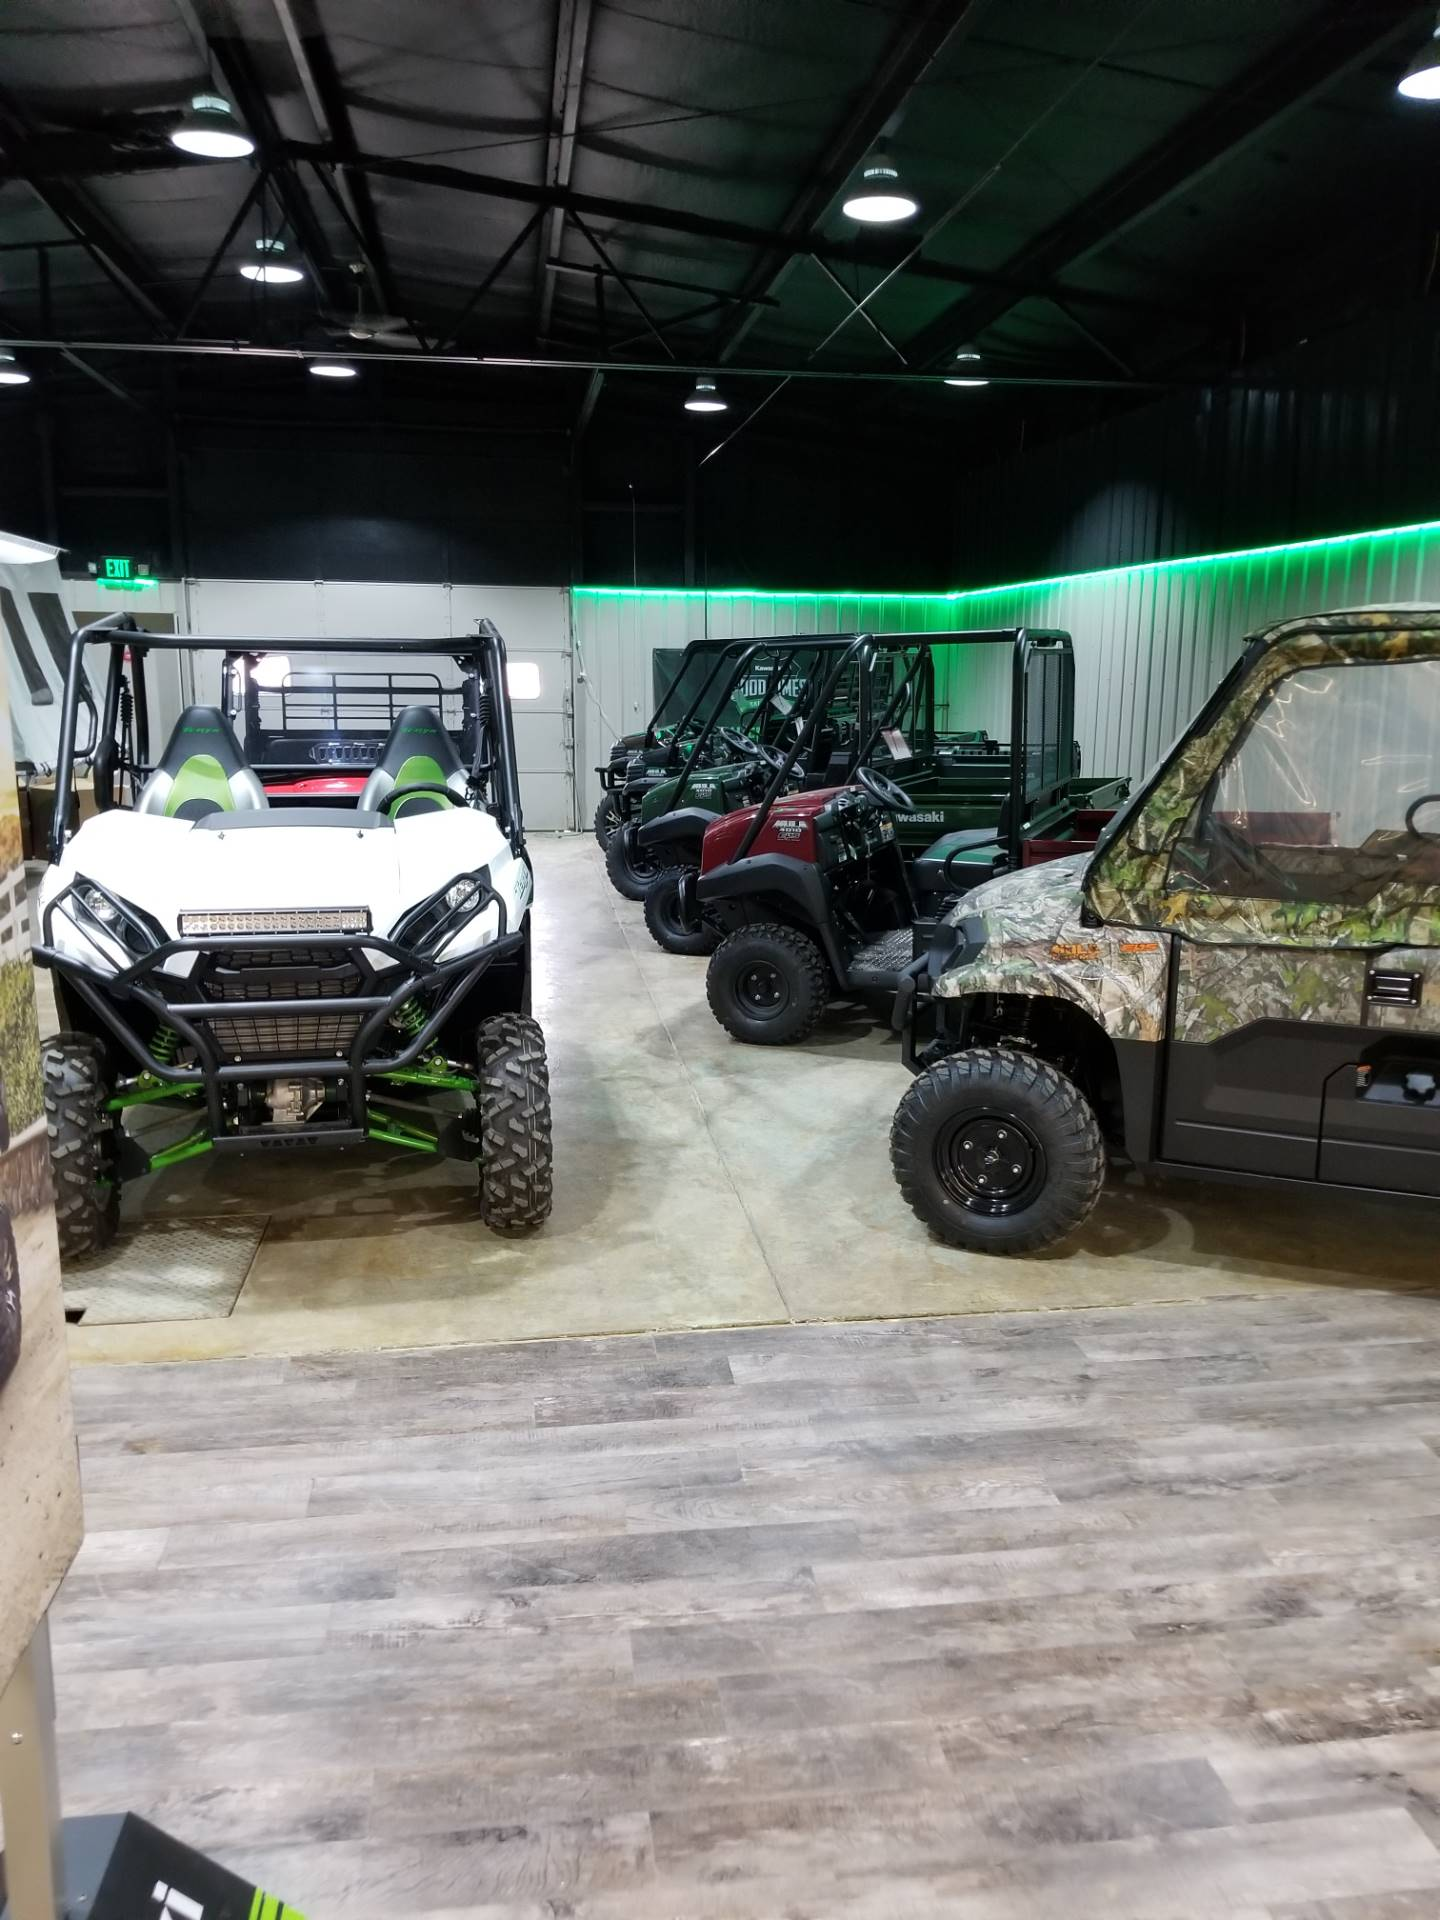 2019 Kawasaki Mule 4010 4x4 in Hillsboro, Wisconsin - Photo 5